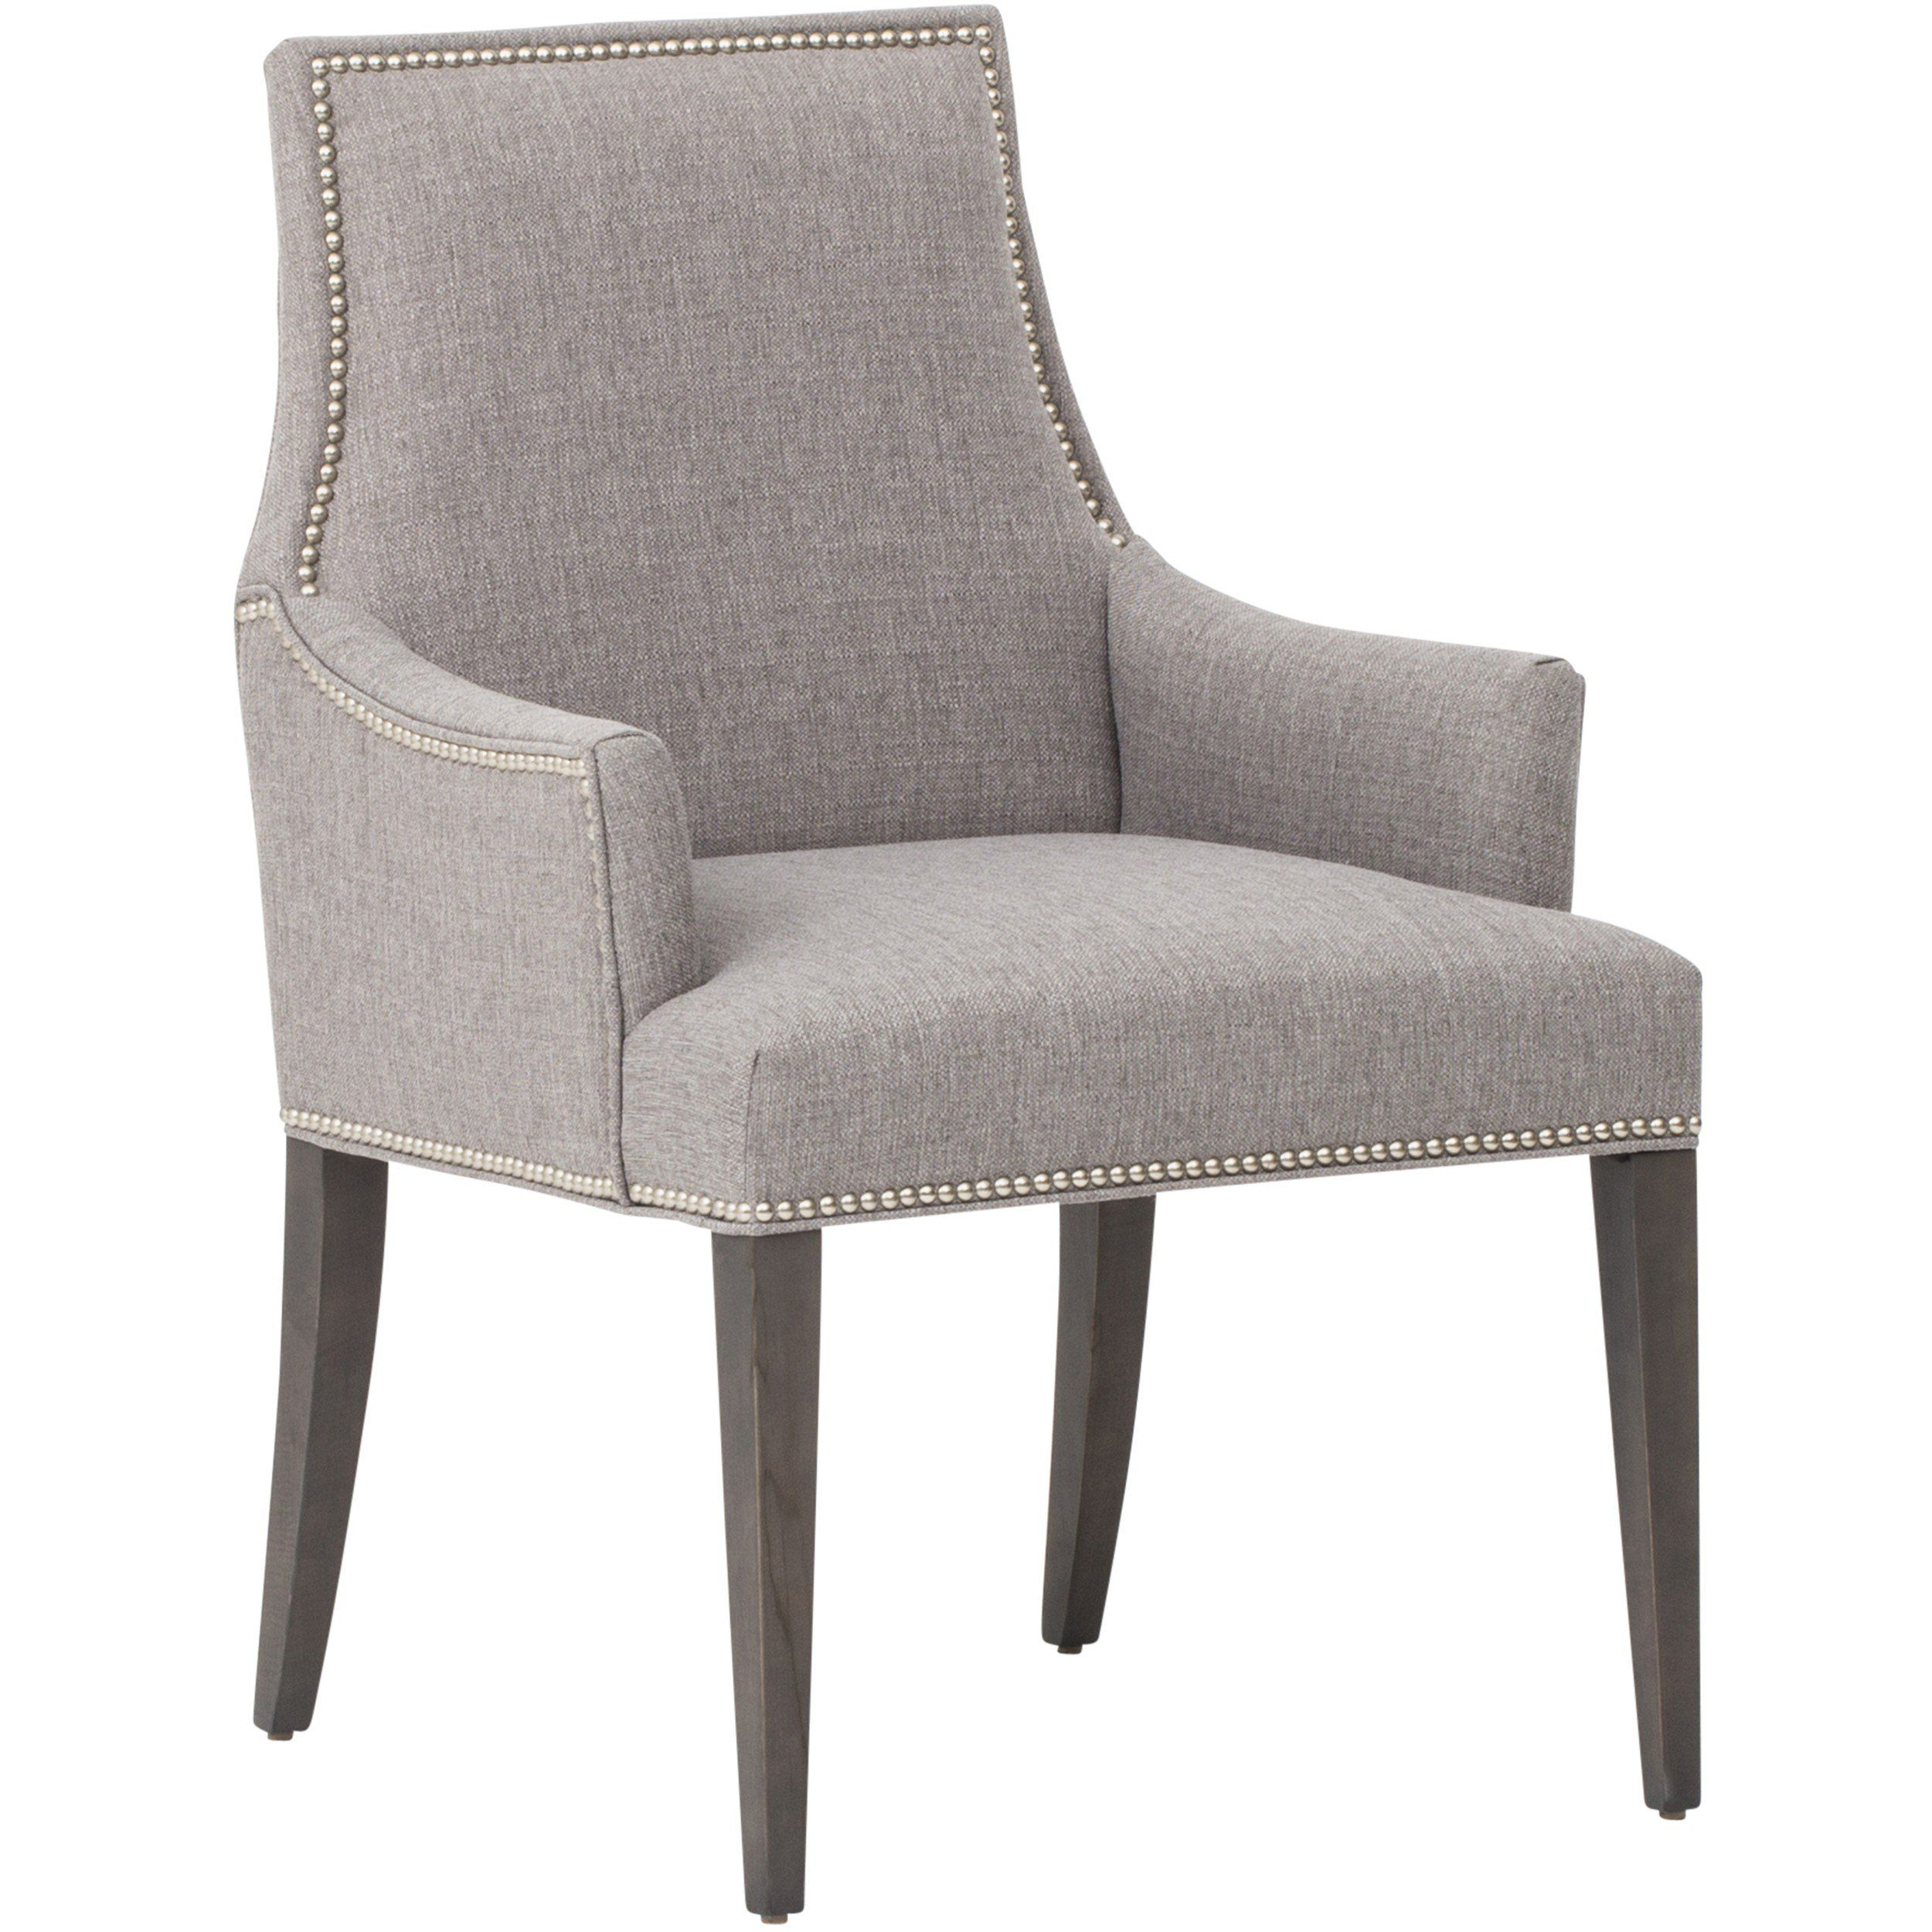 Oliver Arm Chair, Durango Slate   Chairs U0026 Benches   Dining   Furniture